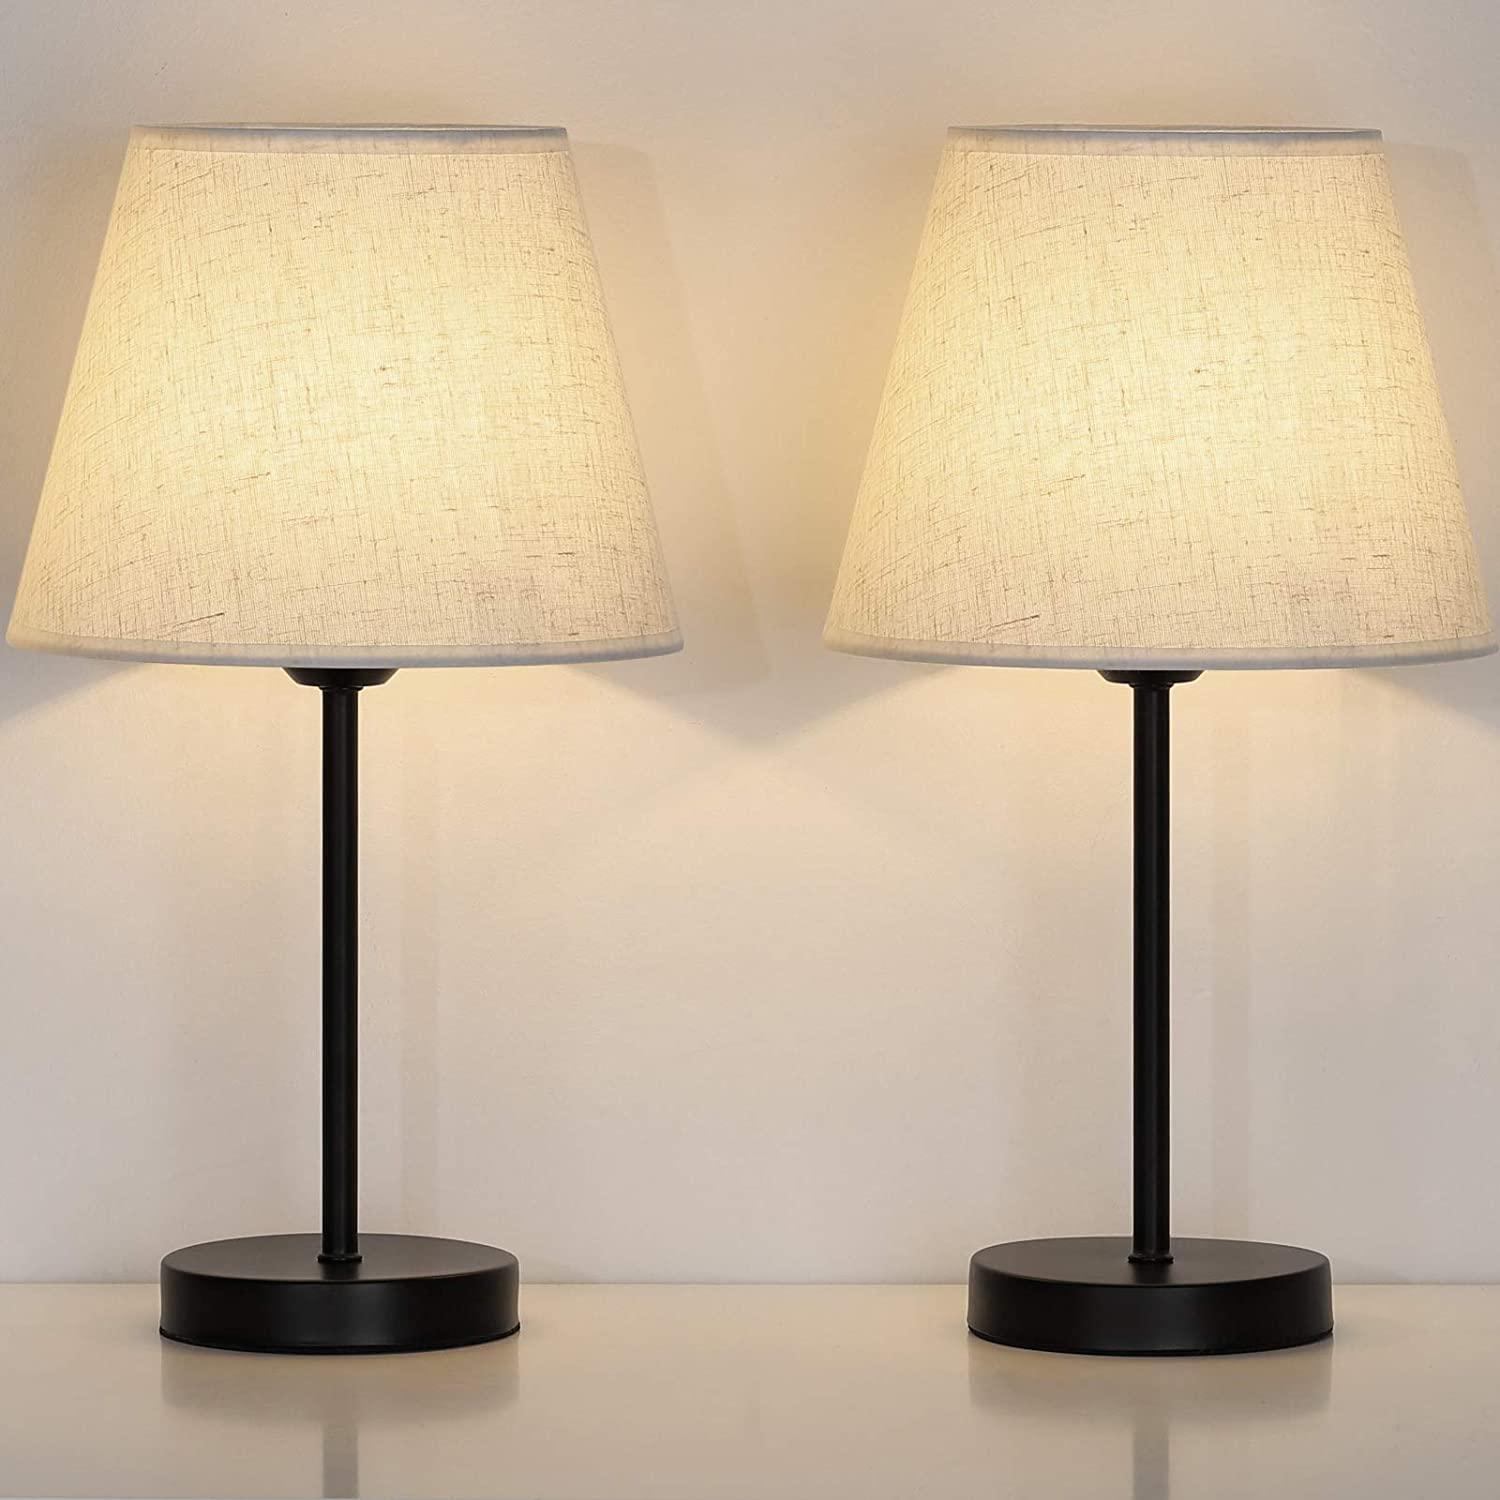 Bedside Nightstand Table Lamps Small Black Metal Lamp With Linen Lampshade For Bedroom Living Room College Dorm Office Set Of 2 Home Improvement